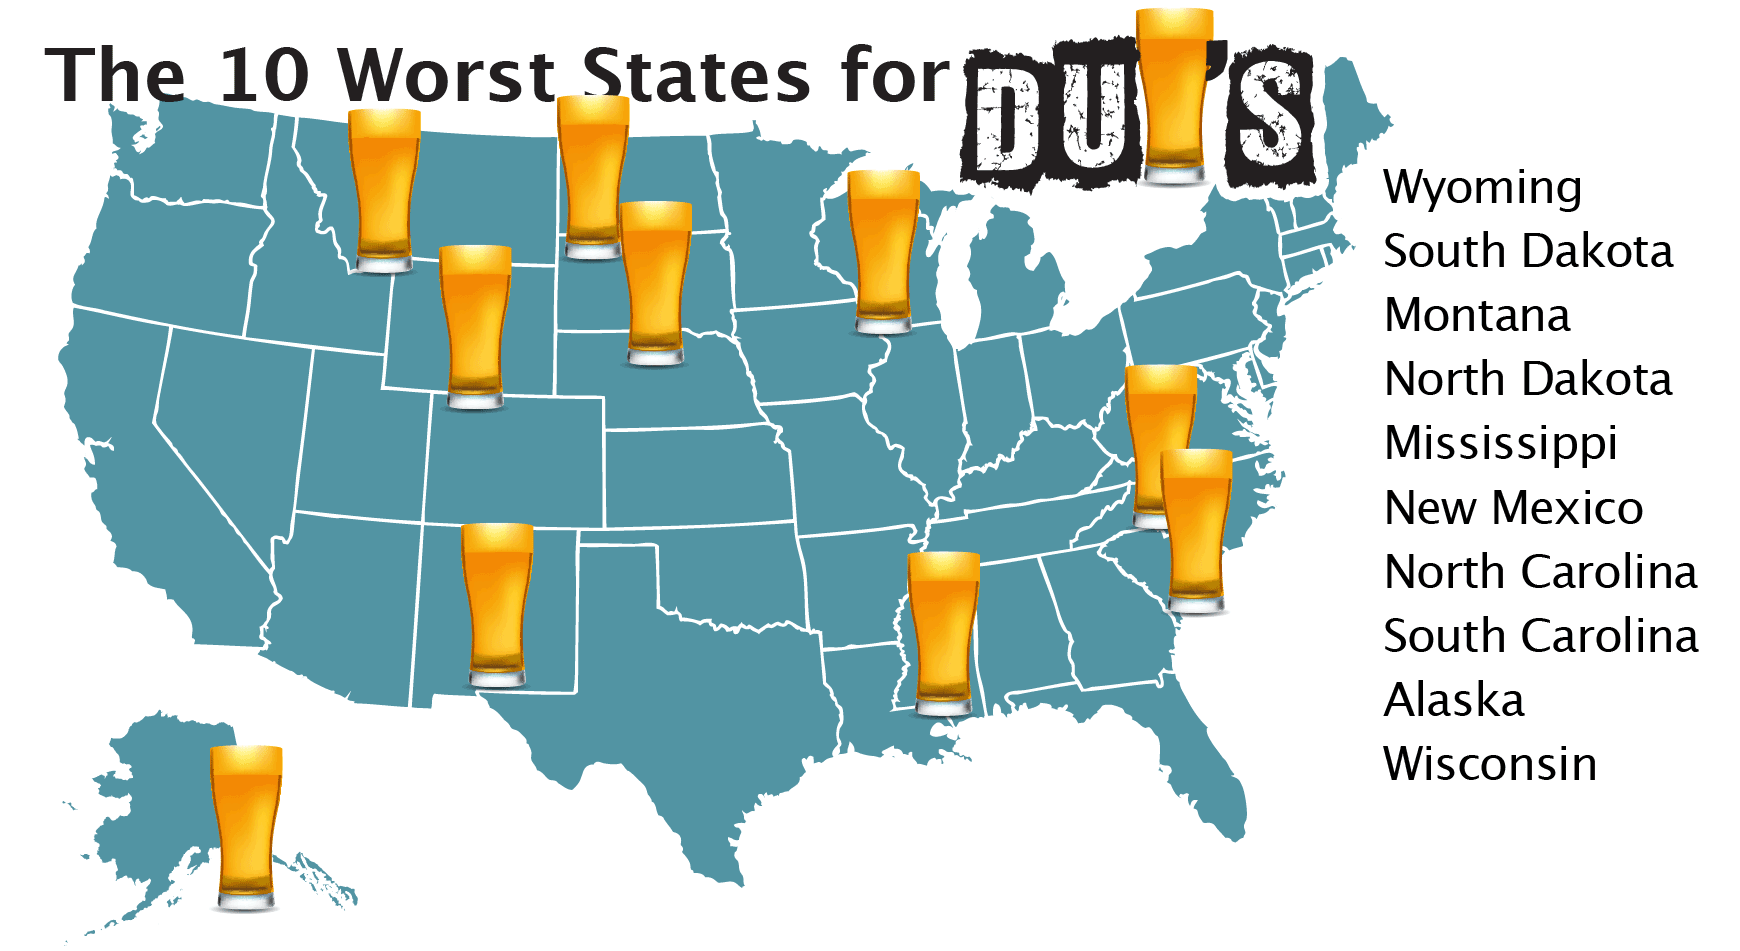 States with most DUIs